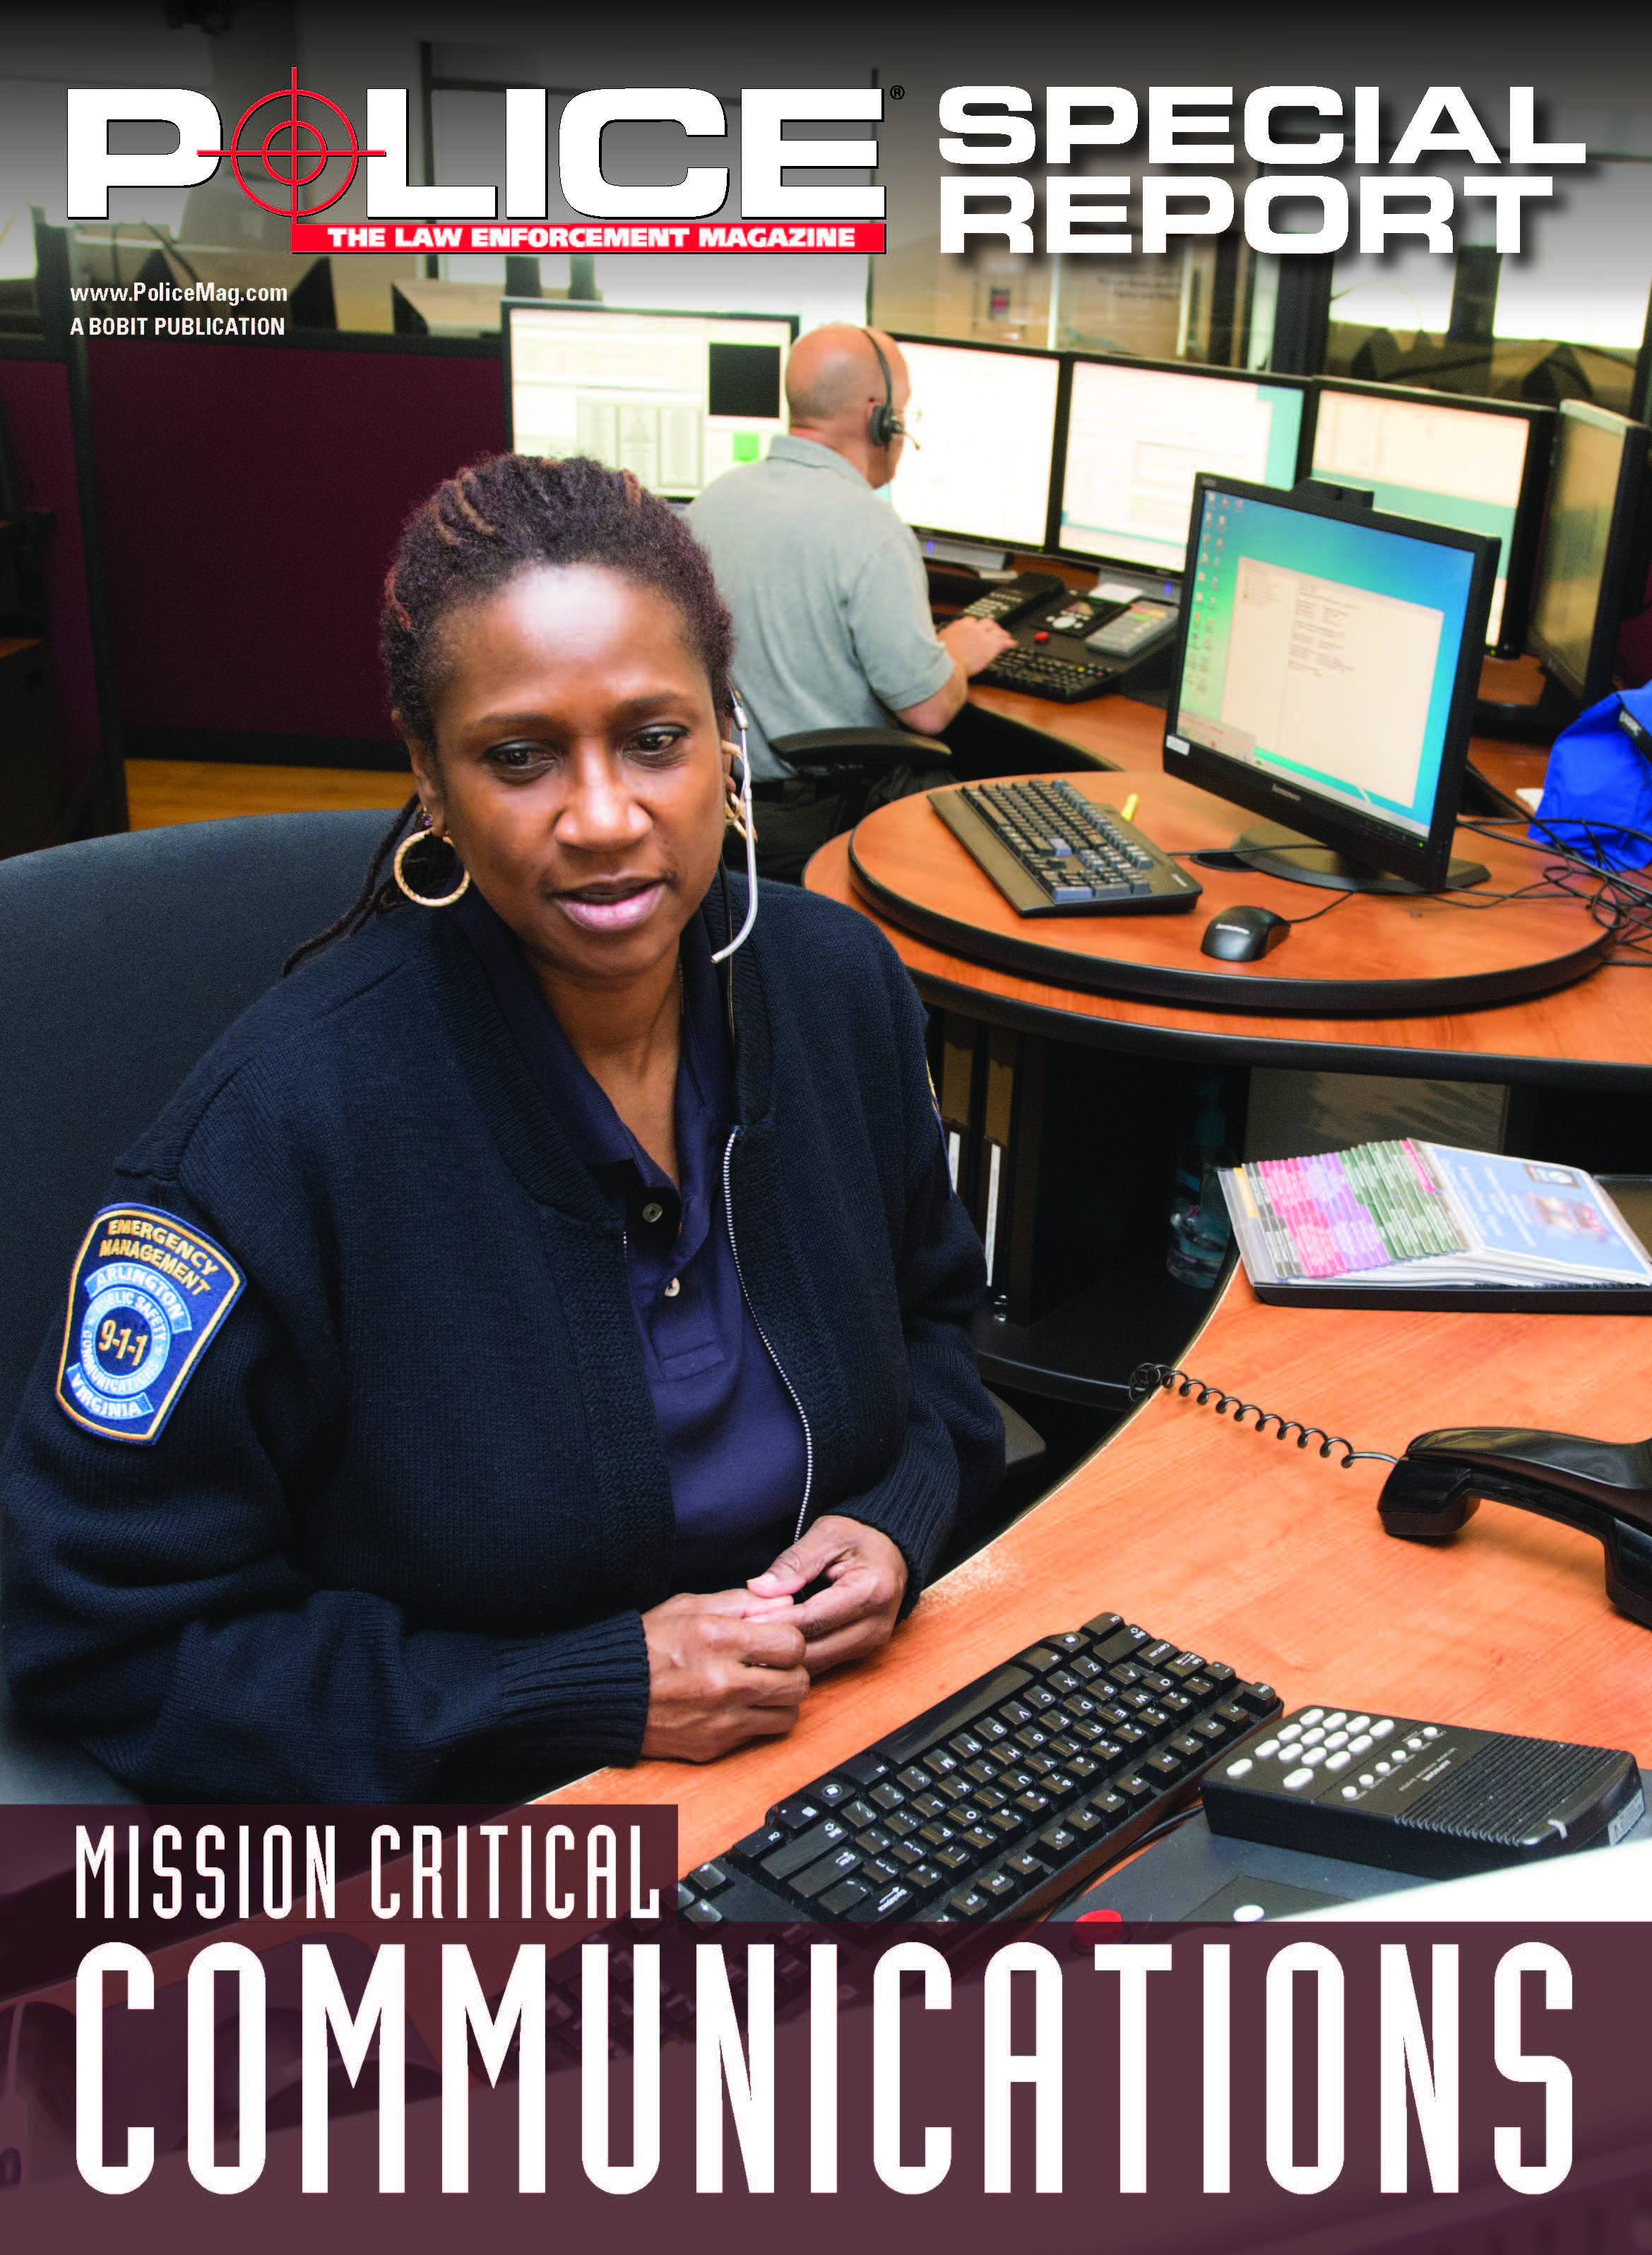 Special Report: Mission Critical Communications